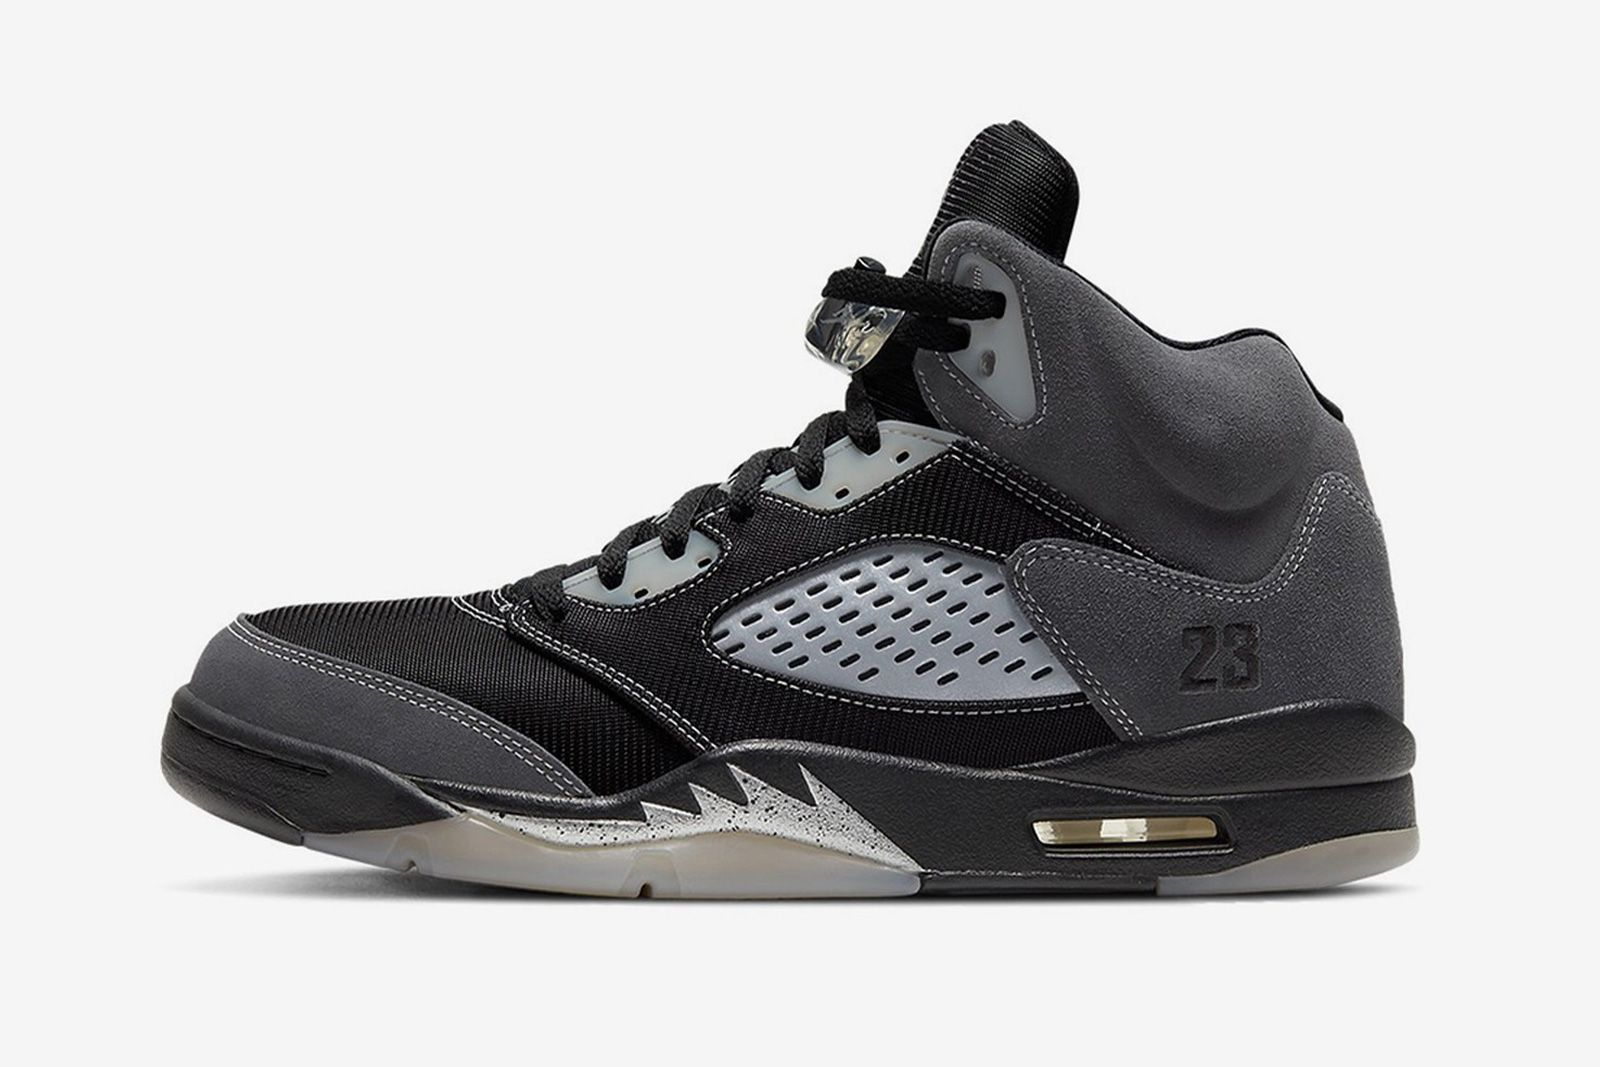 The Best General Release Air Jordans to Look Out For in 2021 28